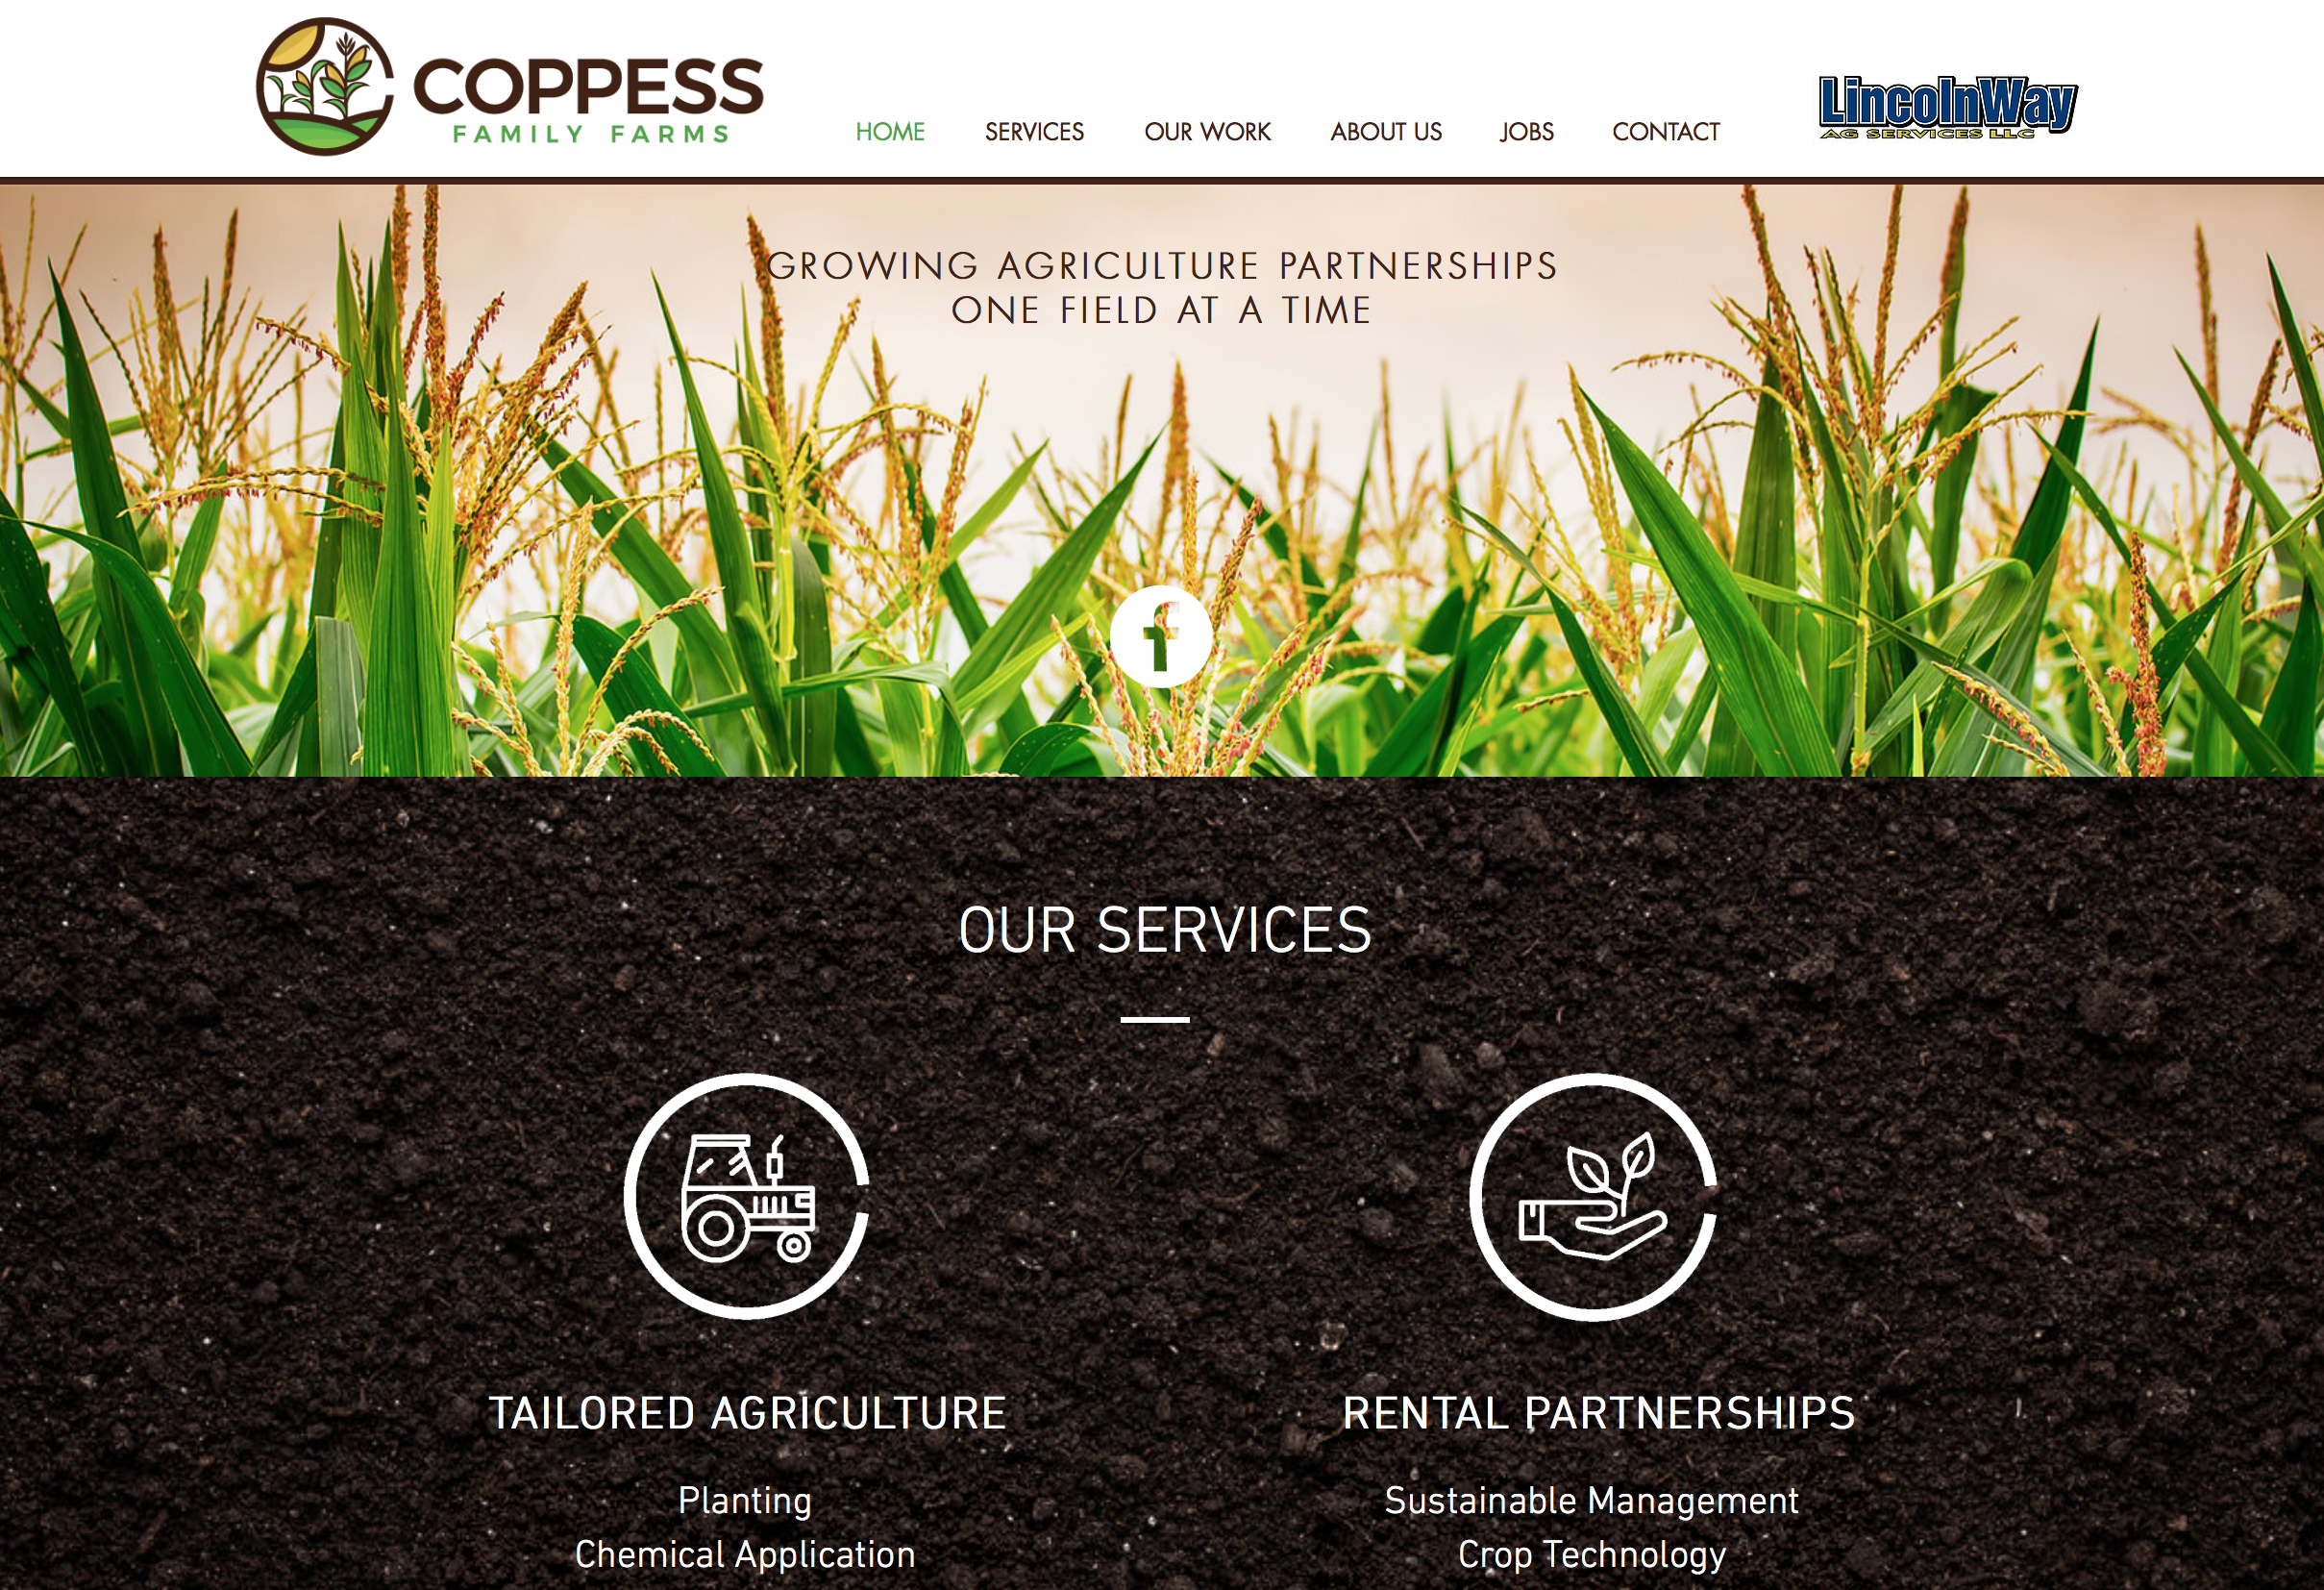 Coppess Family Farms